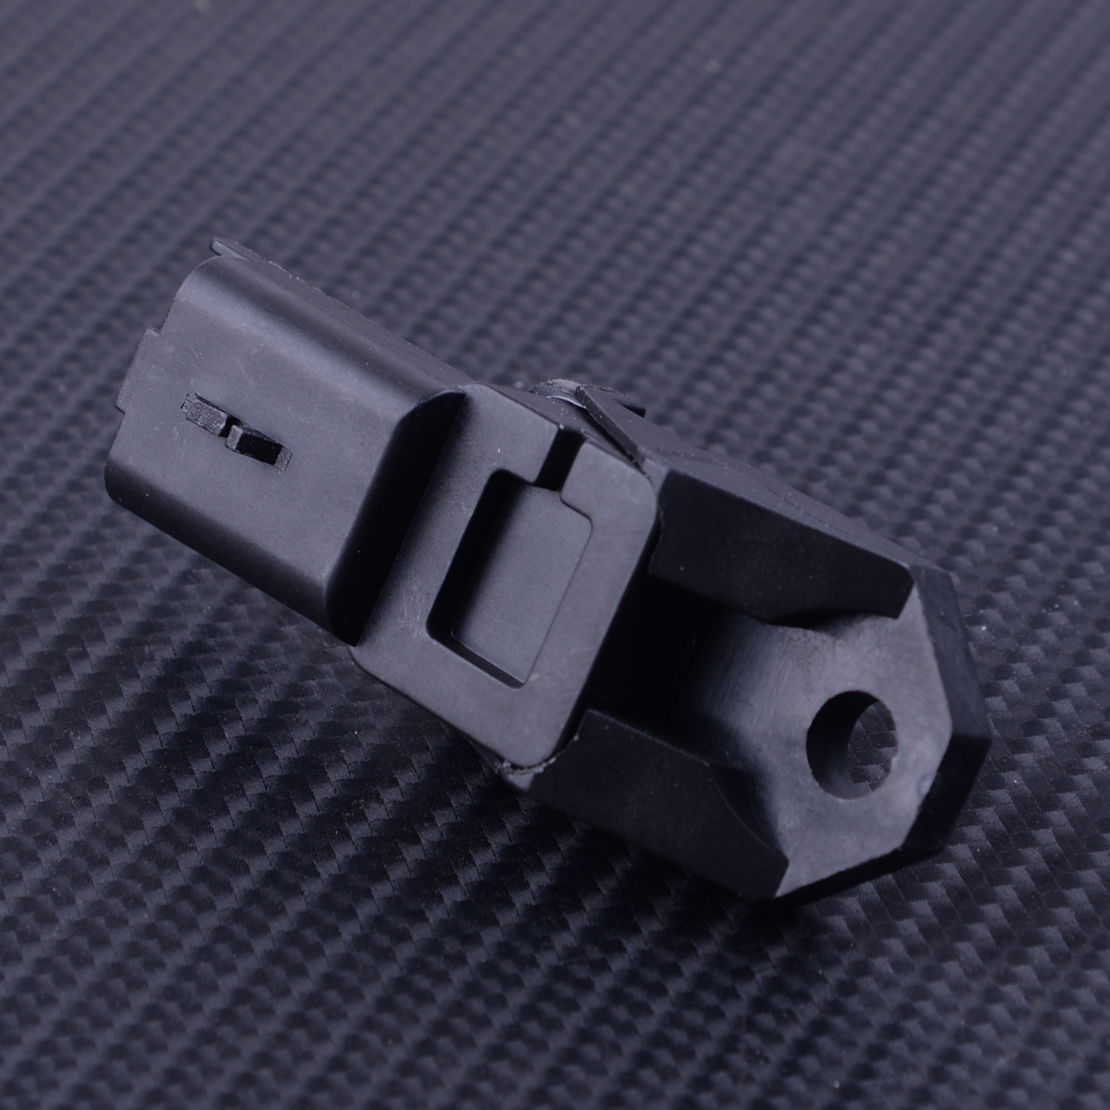 DWCX 3 Pins Black <font><b>Turbo</b></font> Boost Pressure MAP Sensor Plastic 9639469280 1231463 Fit for <font><b>Peugeot</b></font> 1007 206 307 <font><b>407</b></font> 1.6 <font><b>2.0</b></font> <font><b>HDI</b></font> image